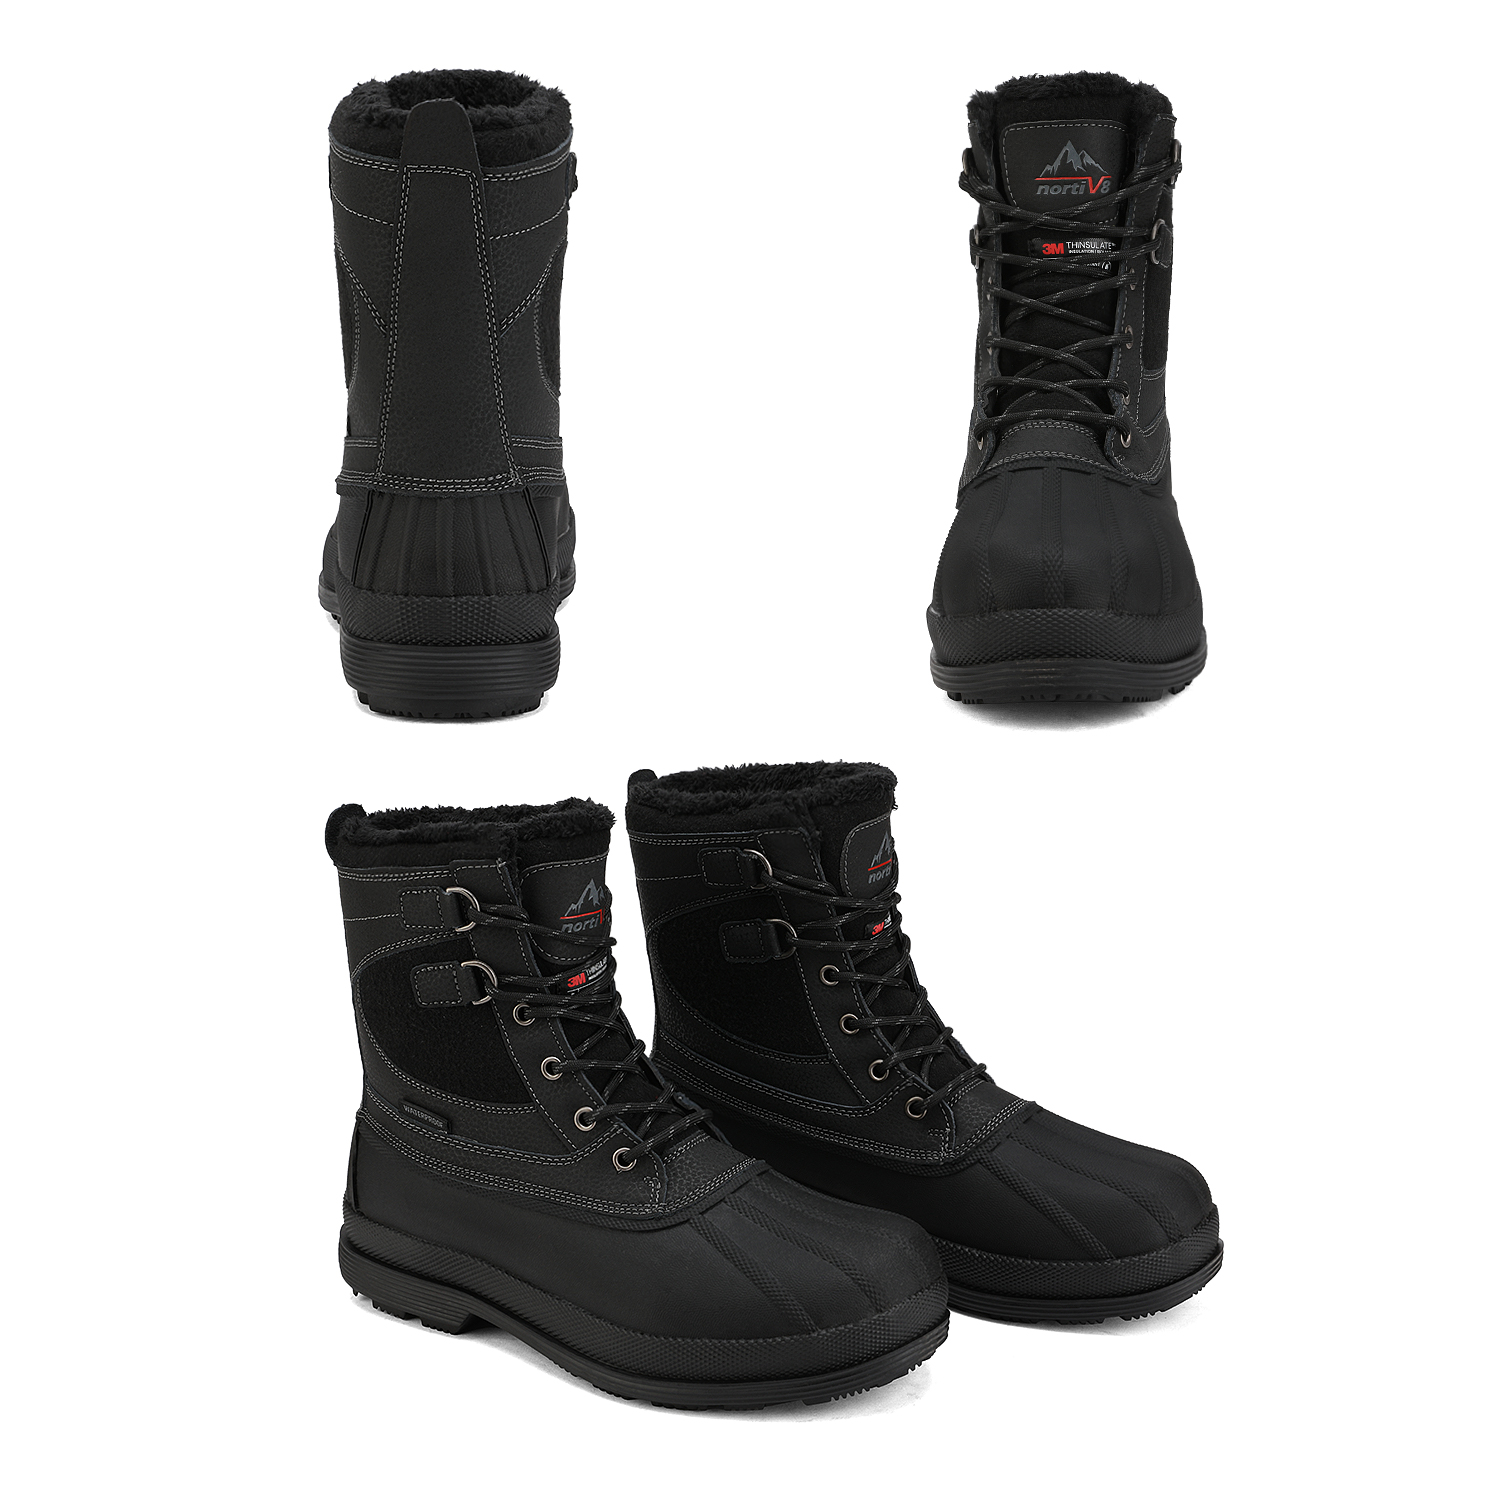 US Mens Winter Lace Up Snow Boots Warm Thermolite Waterproof  Outdoor Work Boots